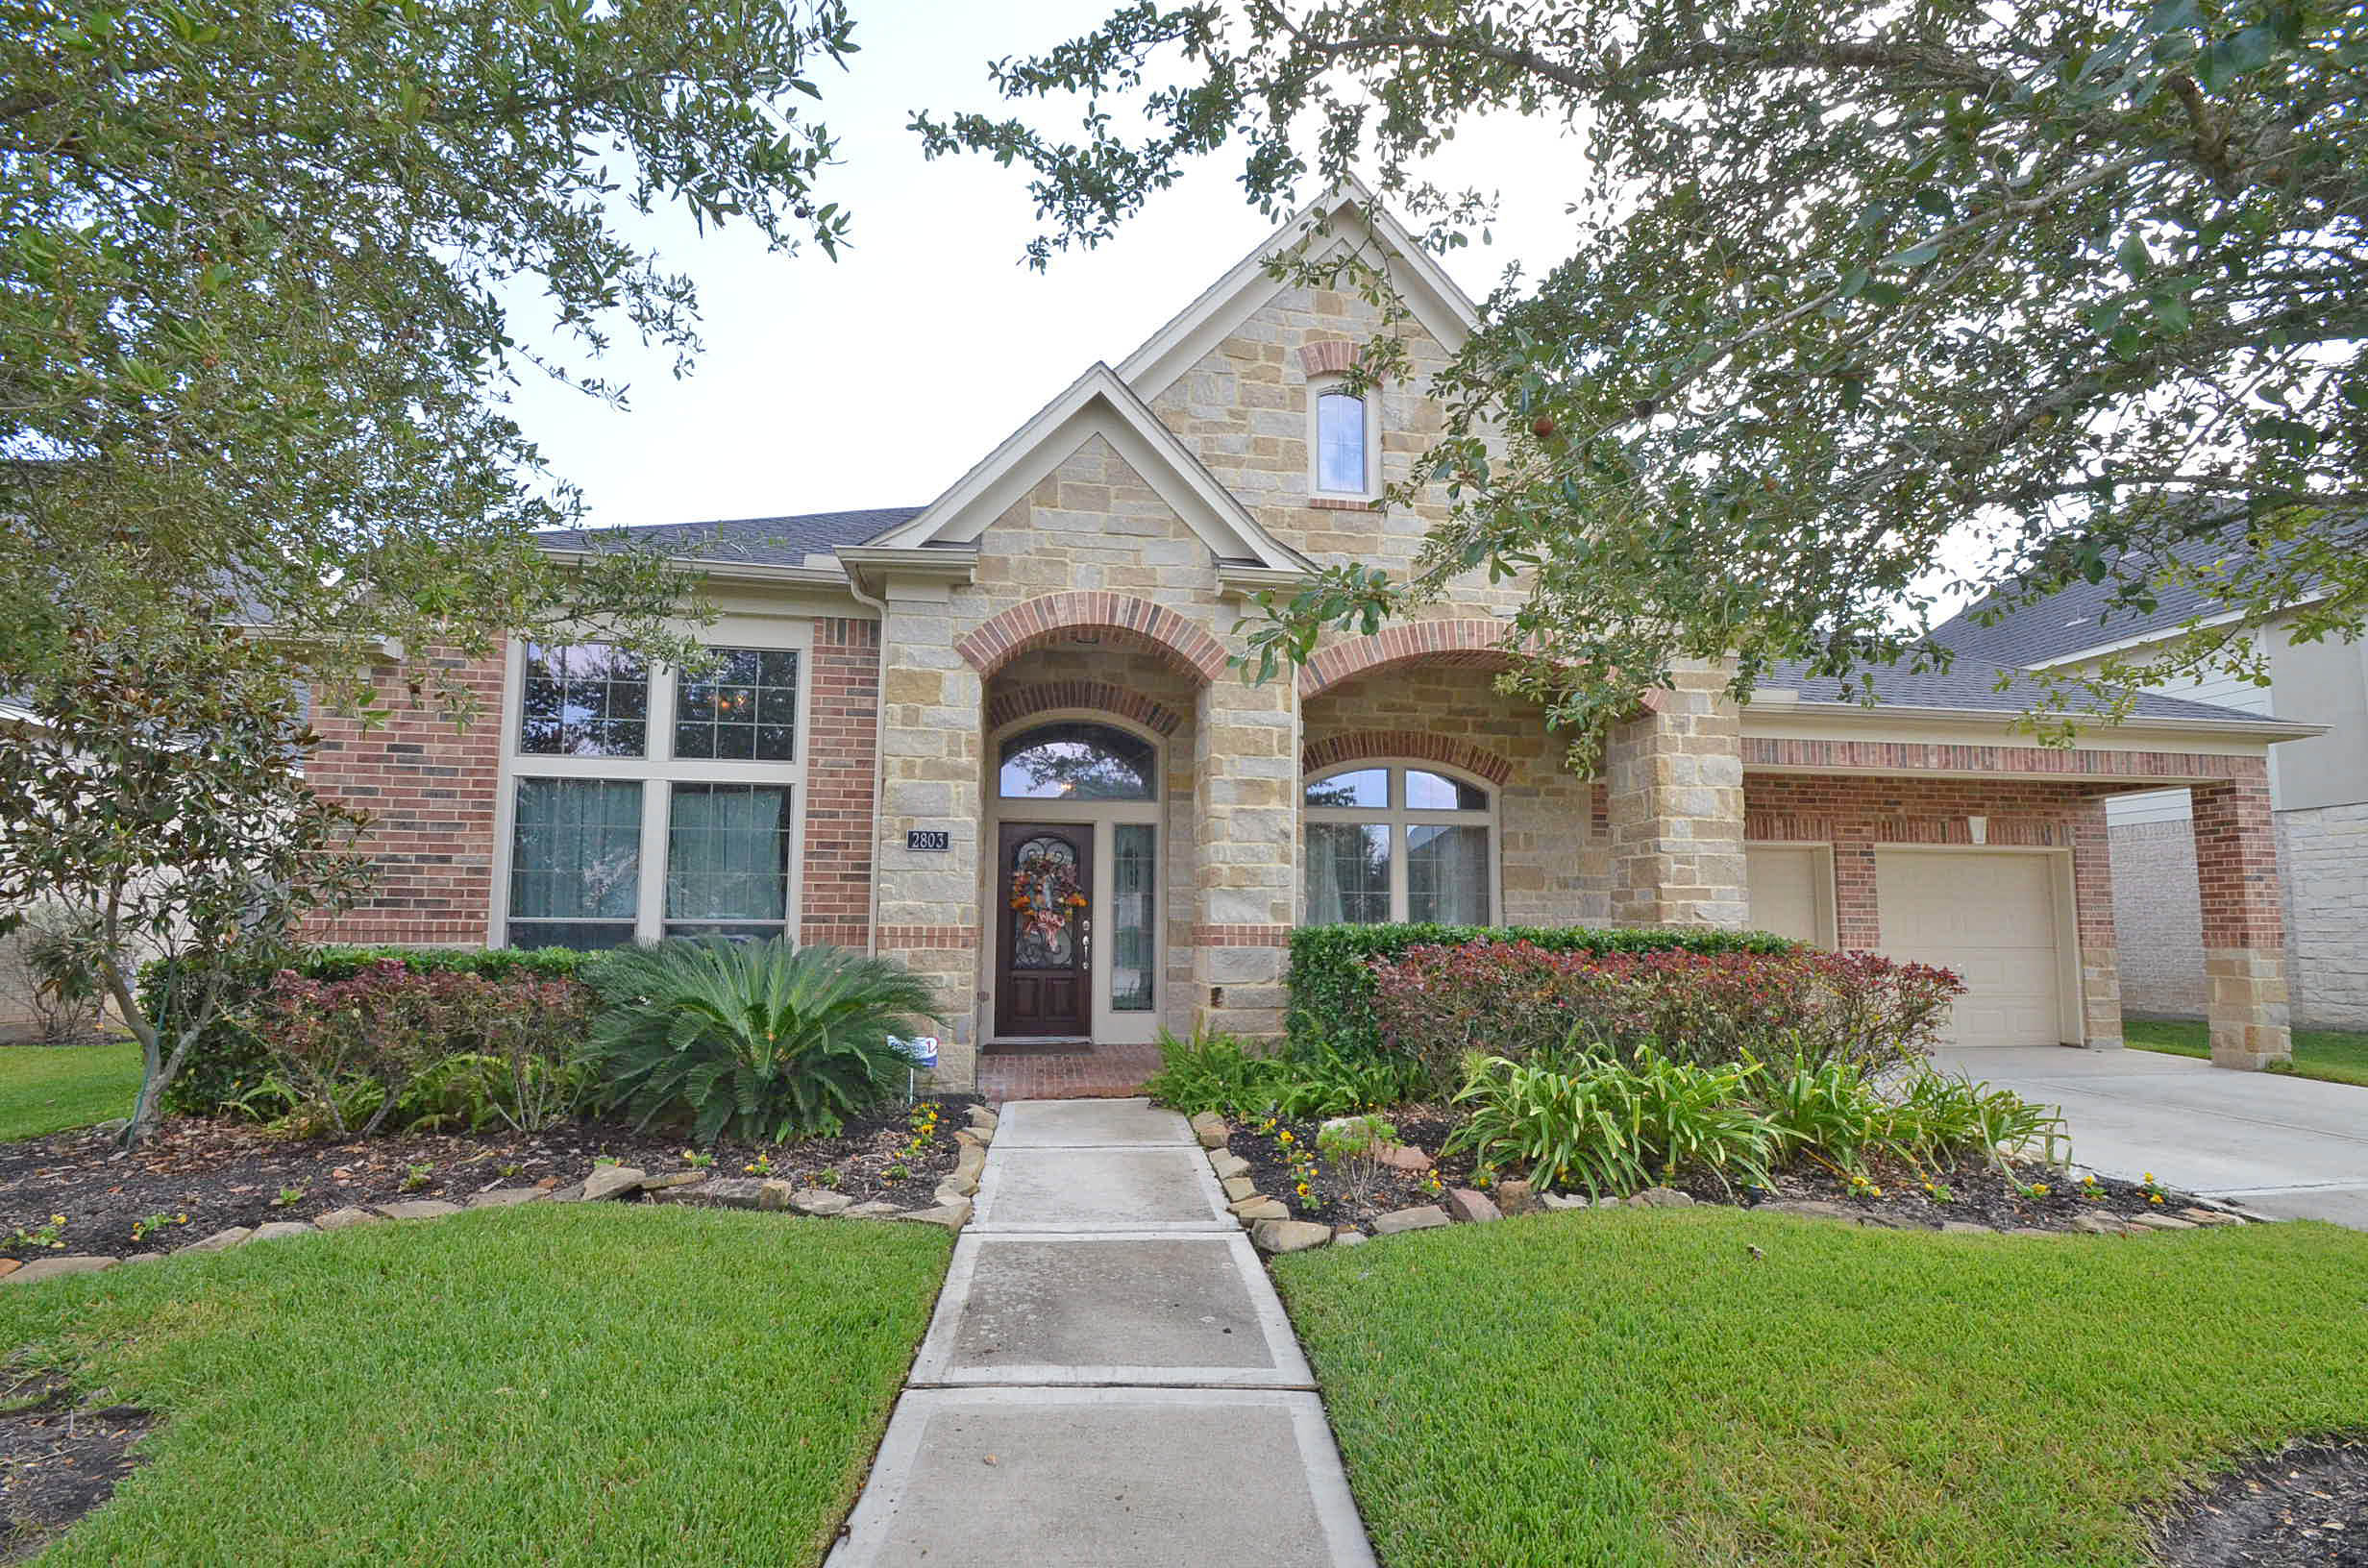 New perry homes katy tx home review for Home designers houston tx